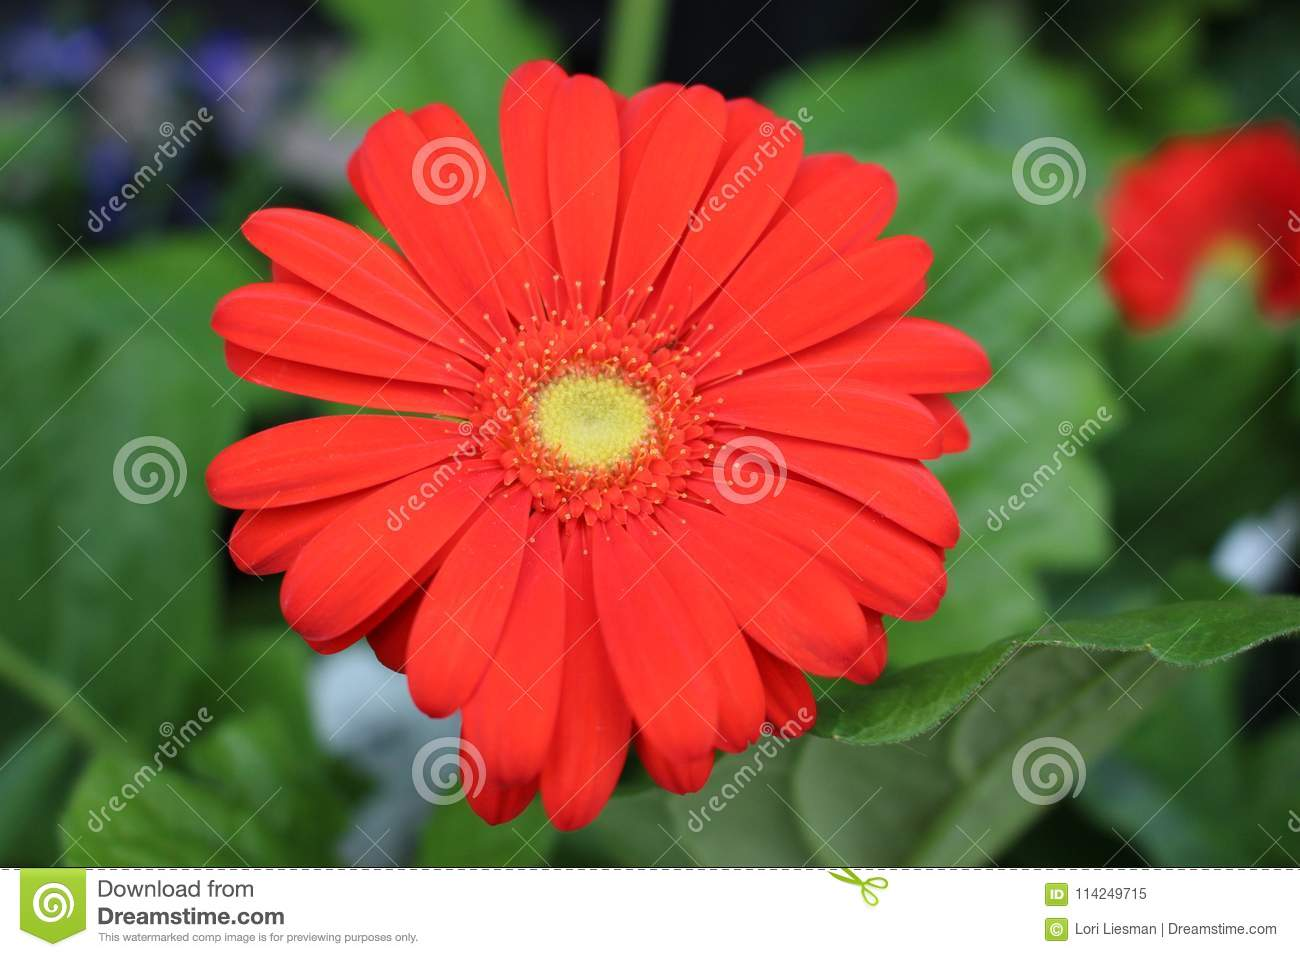 Large Blossomed Daisy Like Red Flower In Full Bloom Stock Image